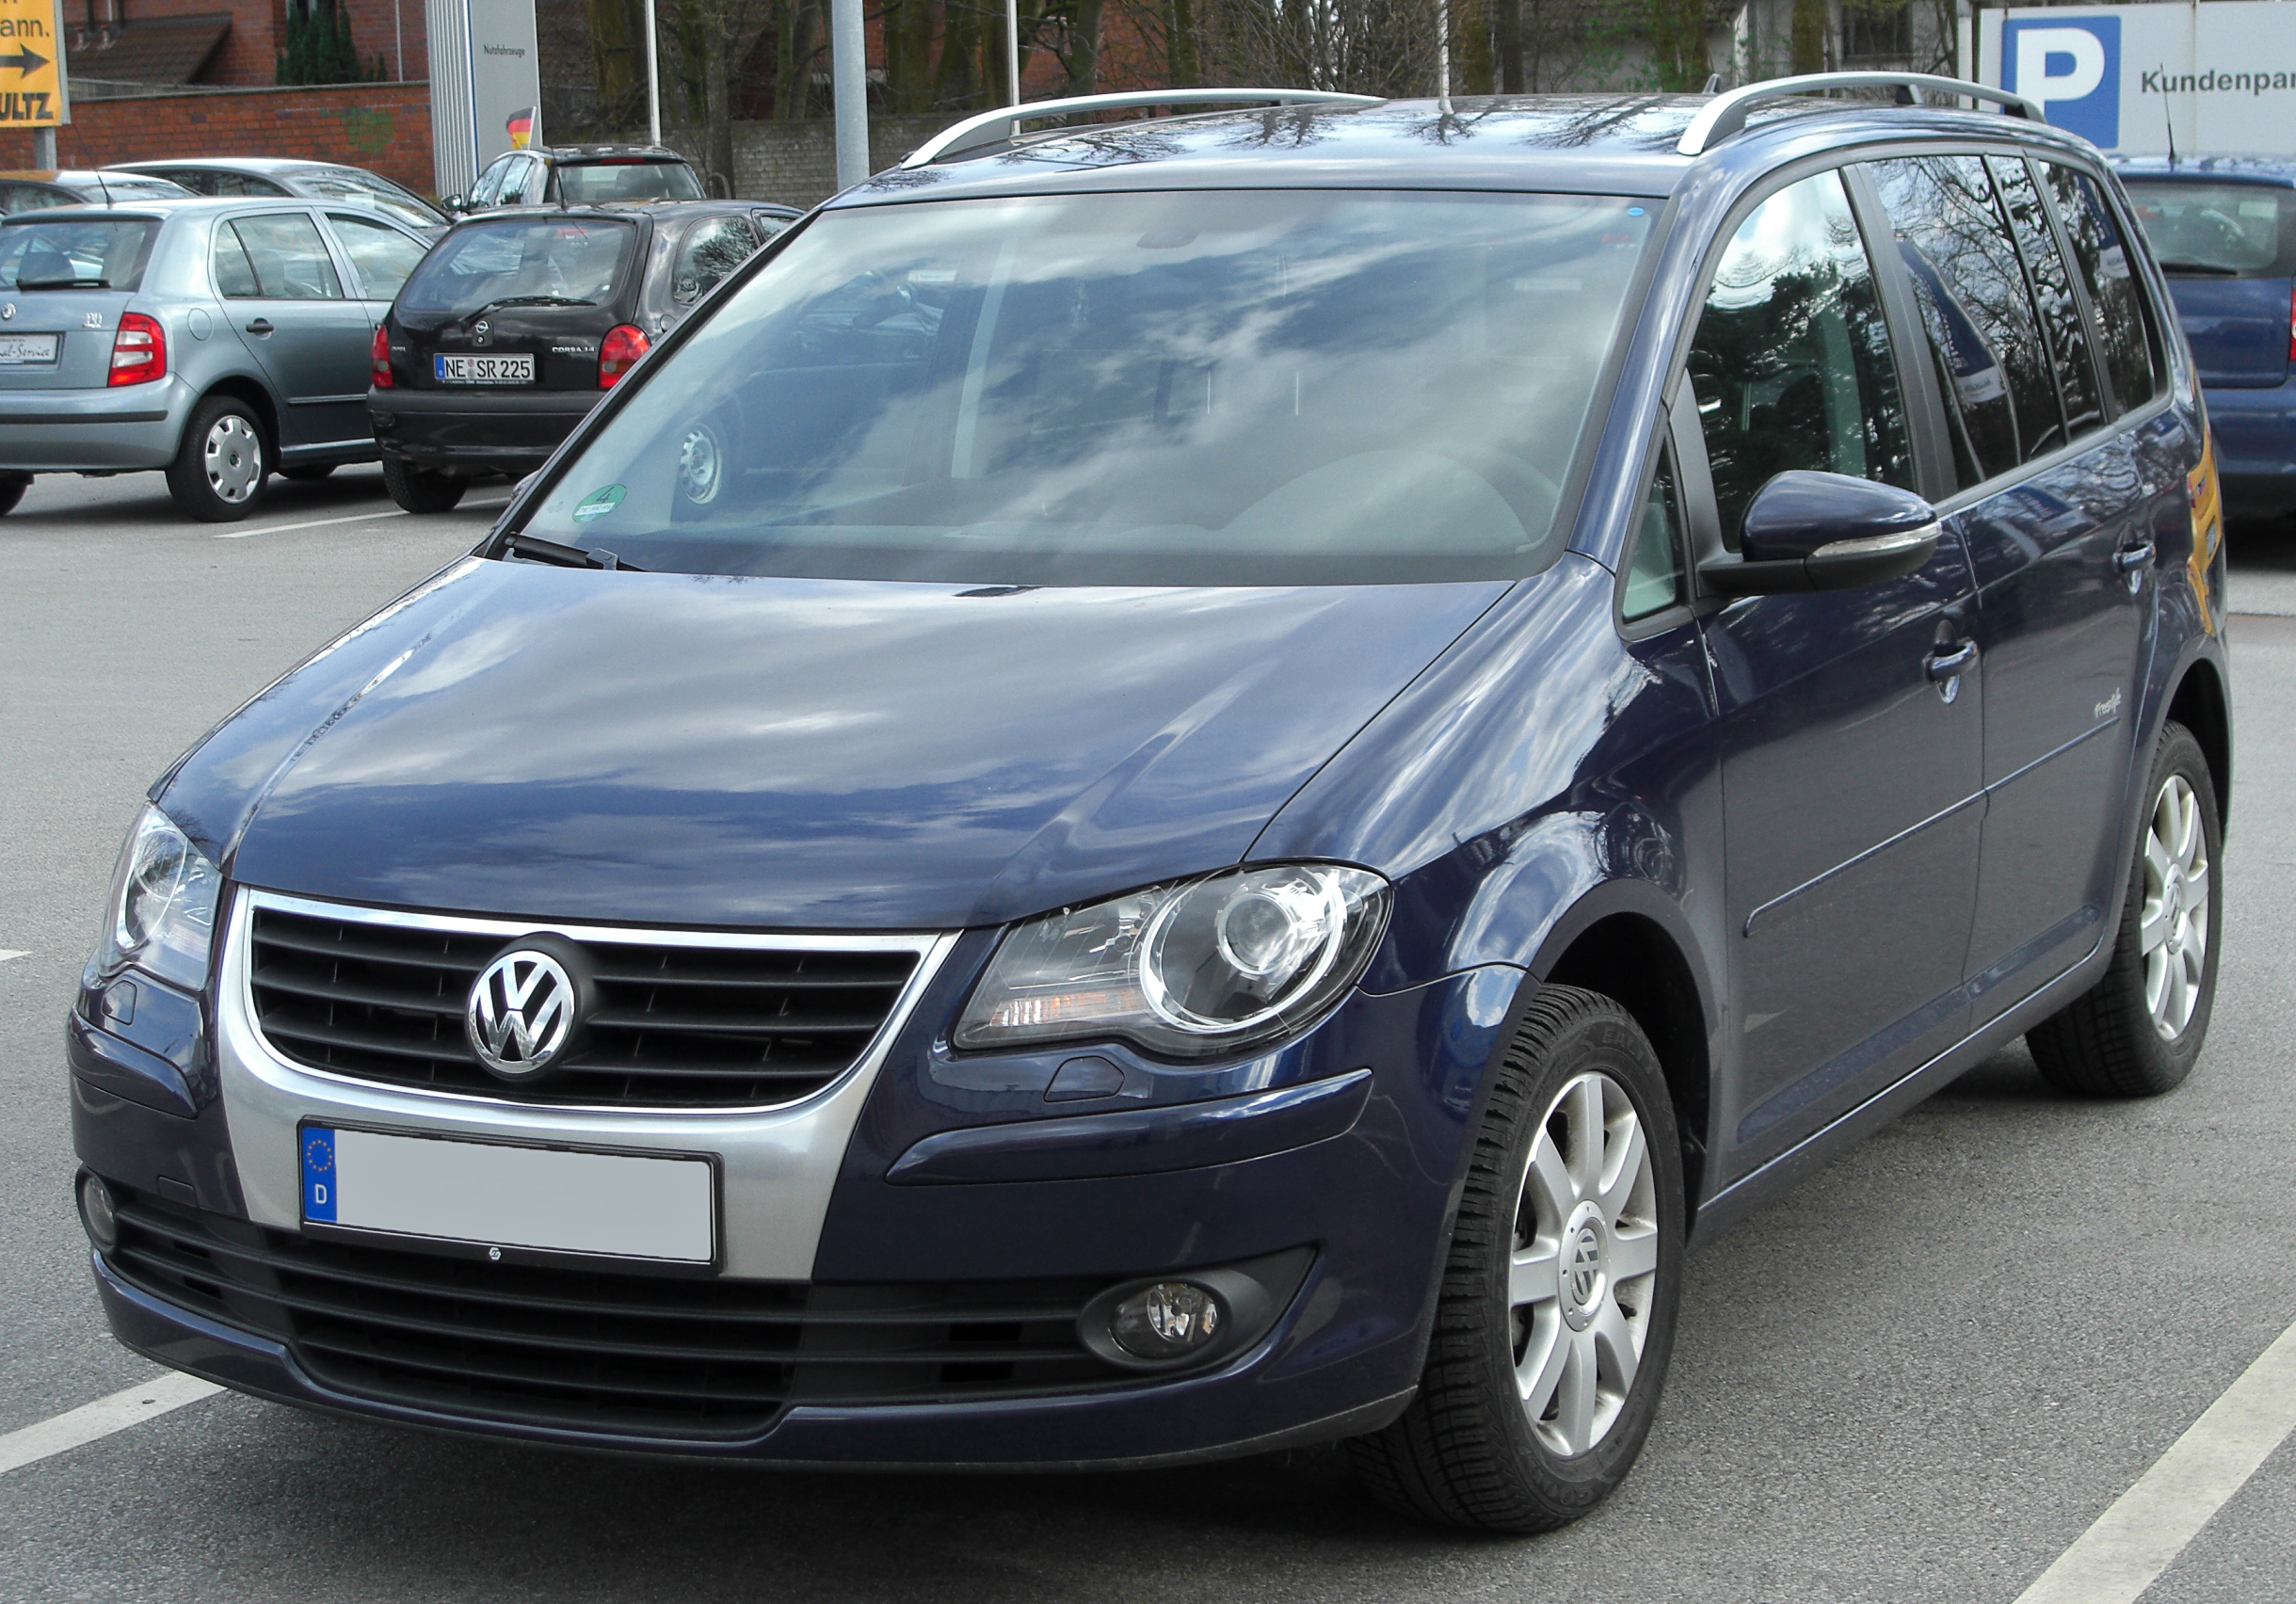 file vw touran facelift freestyle front wikimedia commons. Black Bedroom Furniture Sets. Home Design Ideas